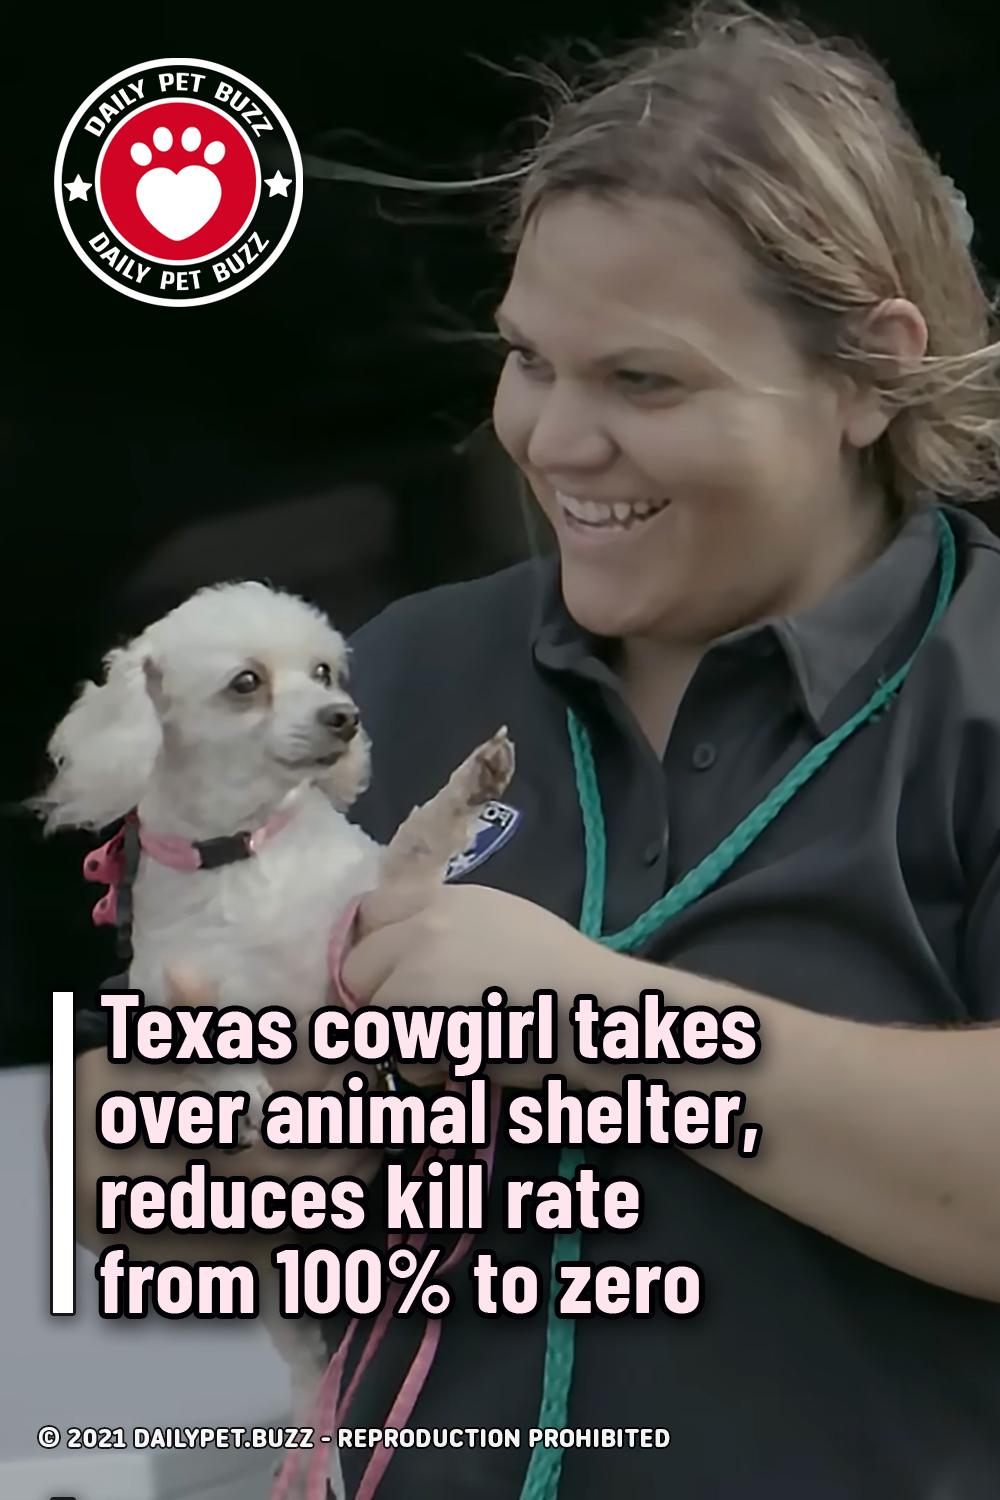 Texas cowgirl takes over animal shelter, reduces kill rate from 100% to zero